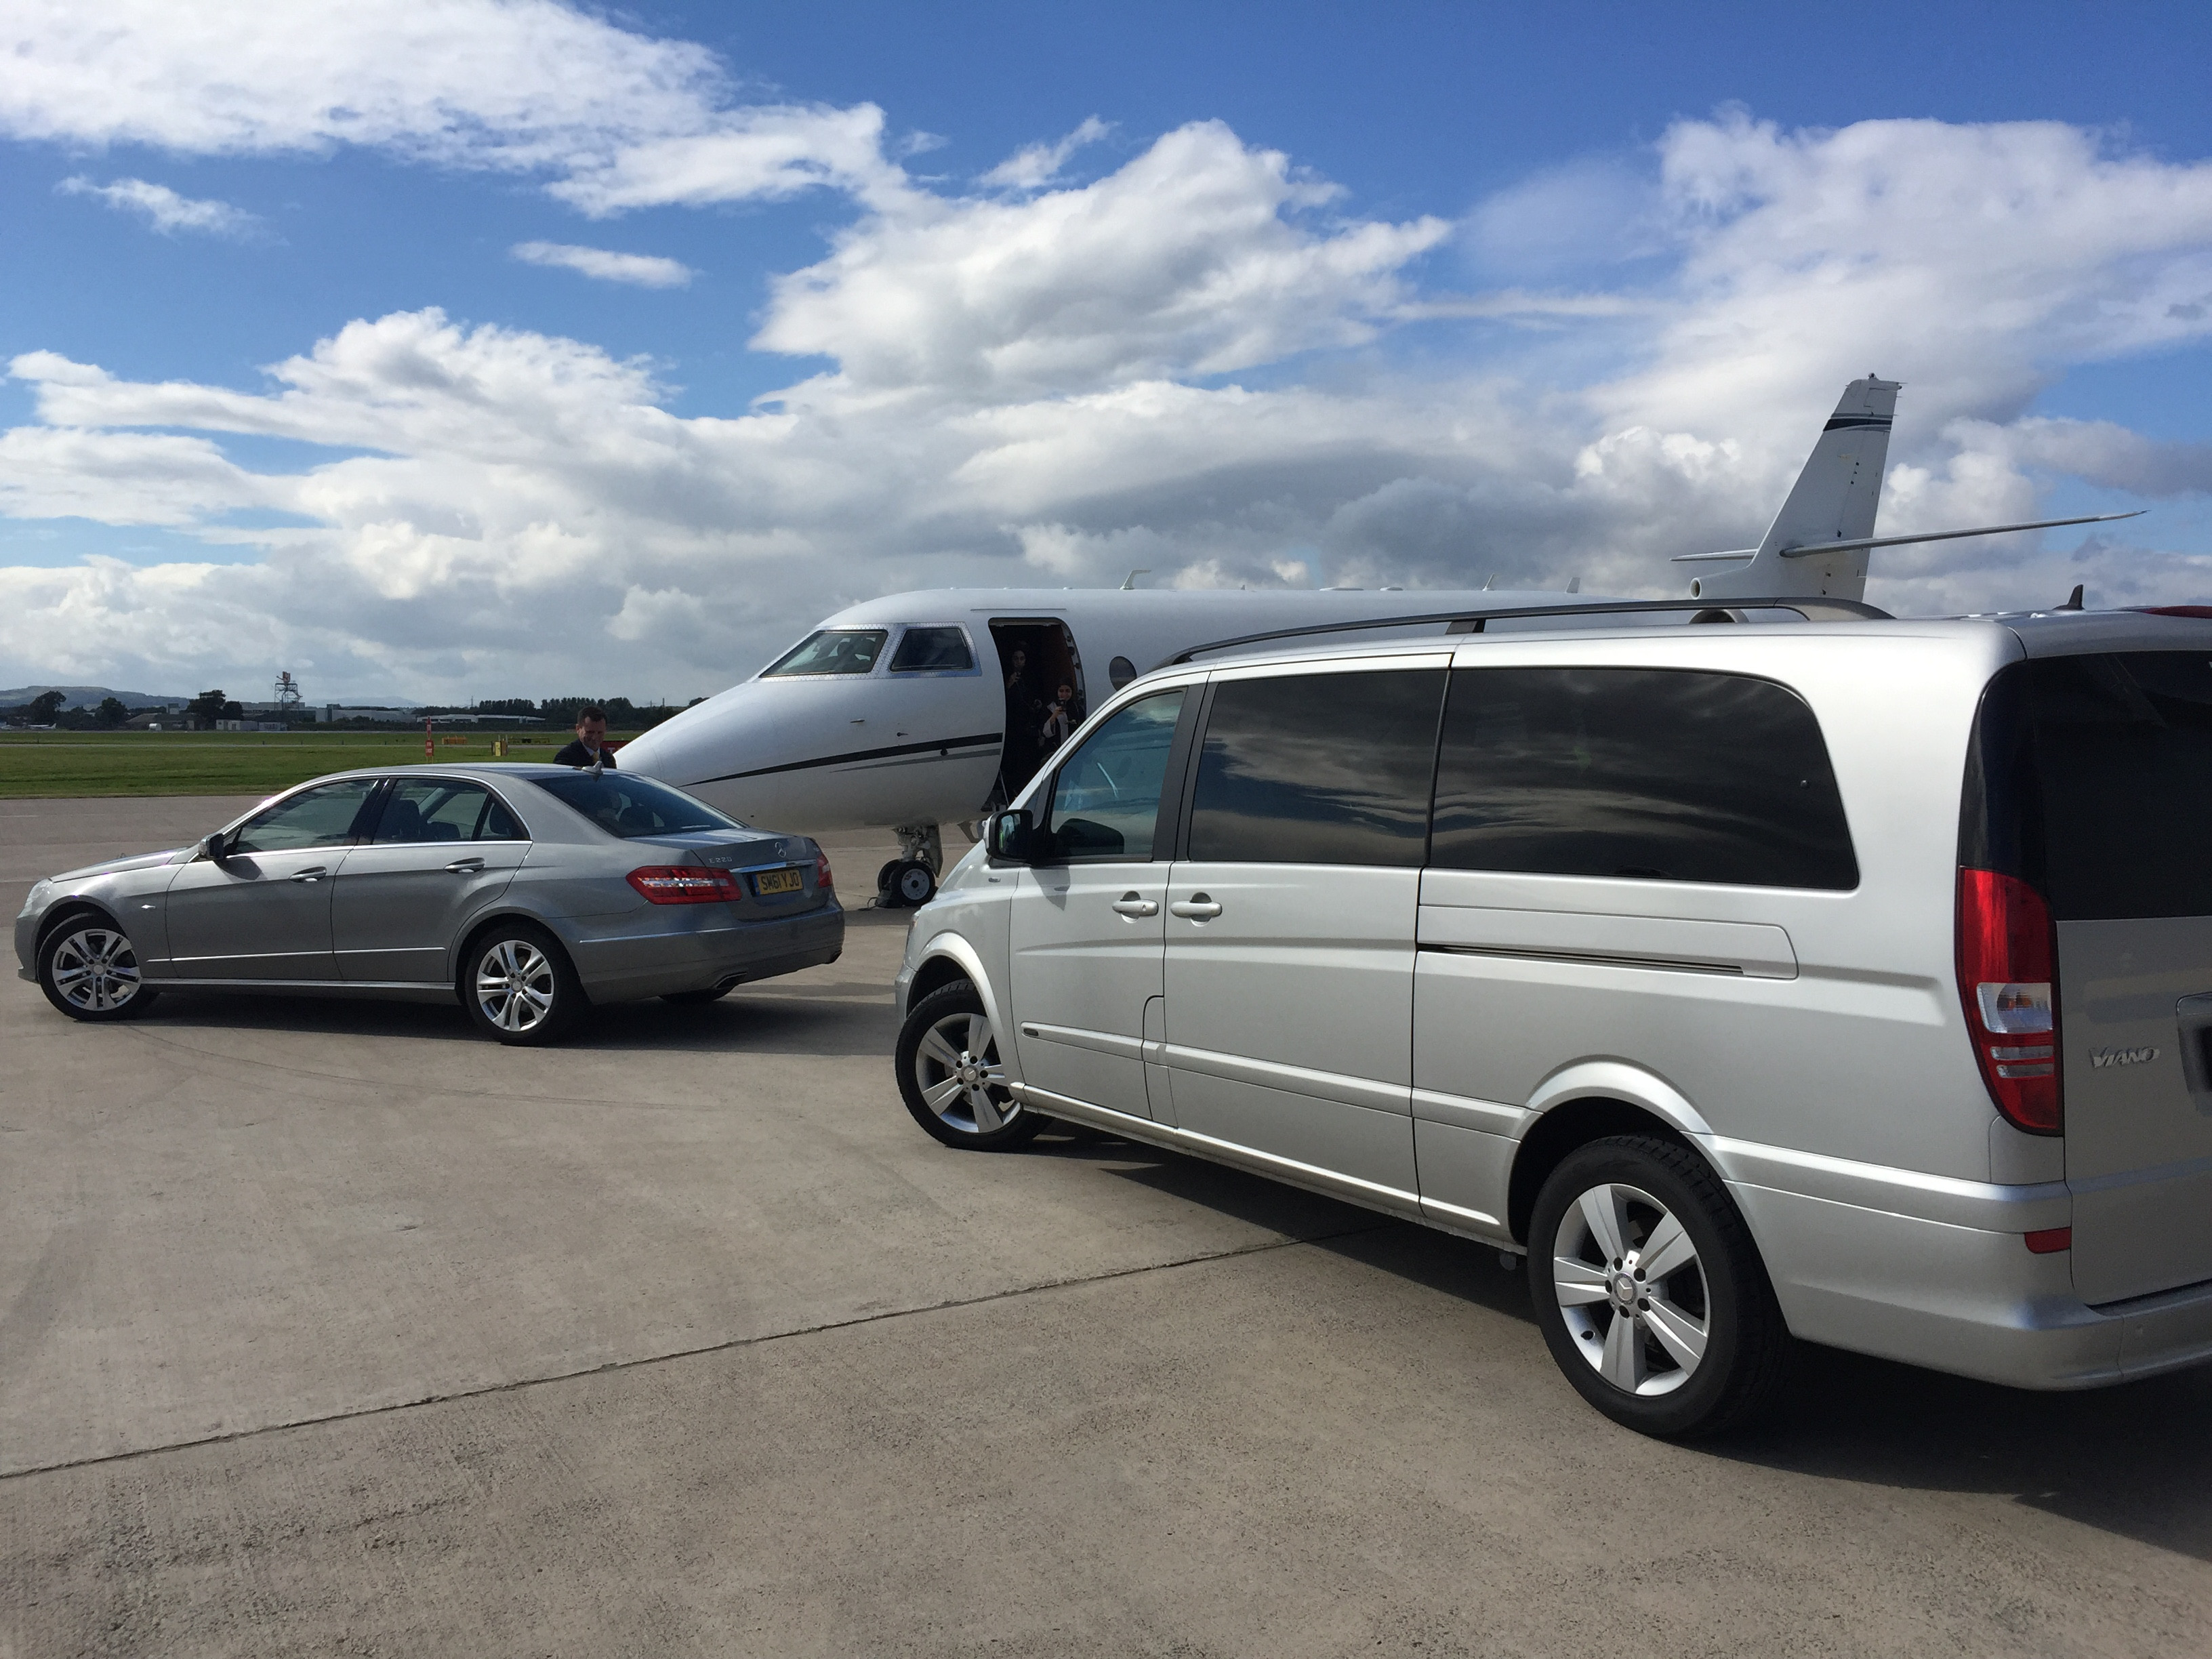 Private Jet Business Jet FBO Transportation Edinburgh Airport